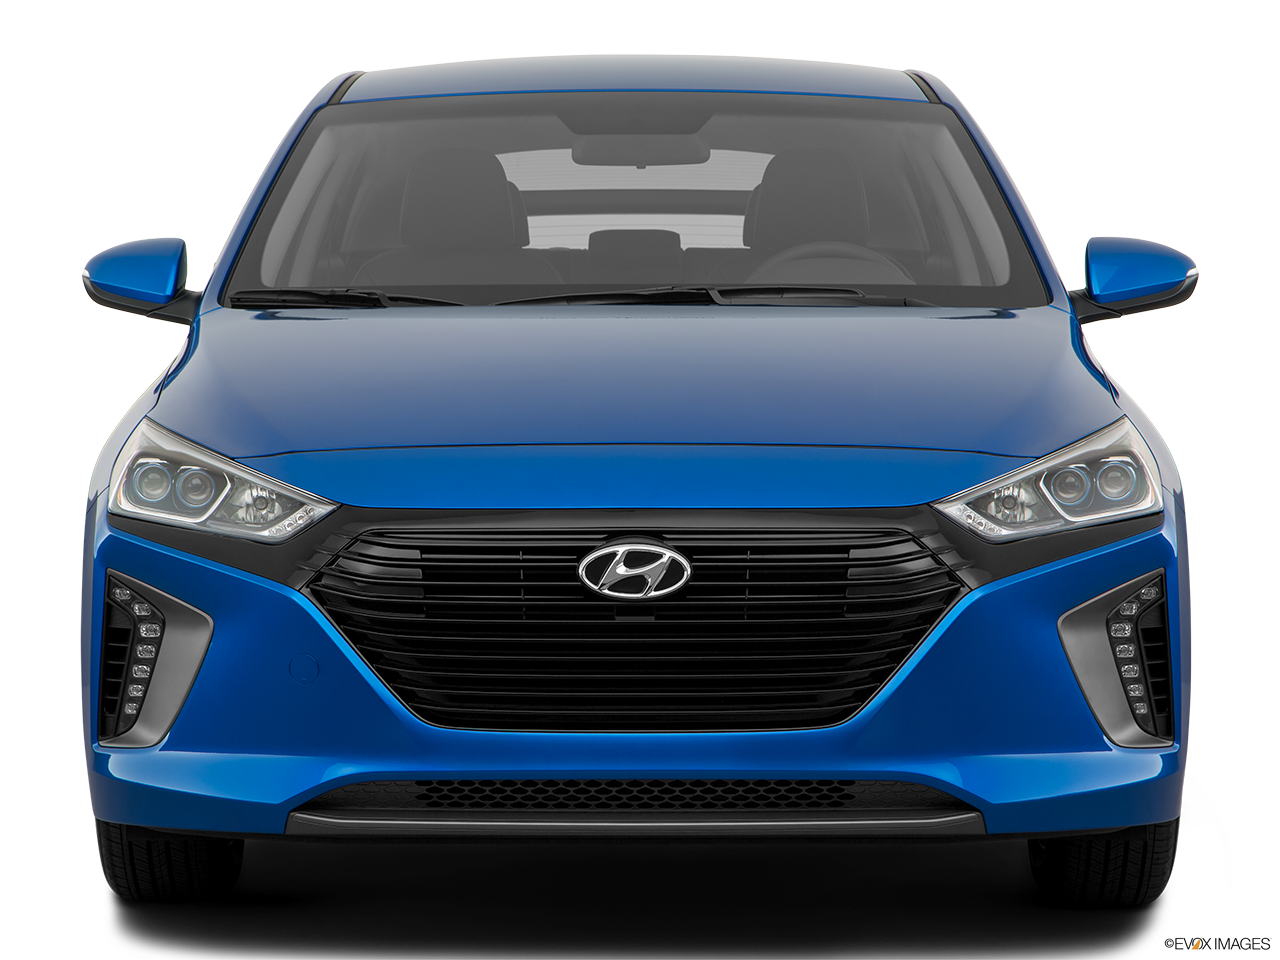 Front view of the Hyundai Ioniq Plug-In Hybrid